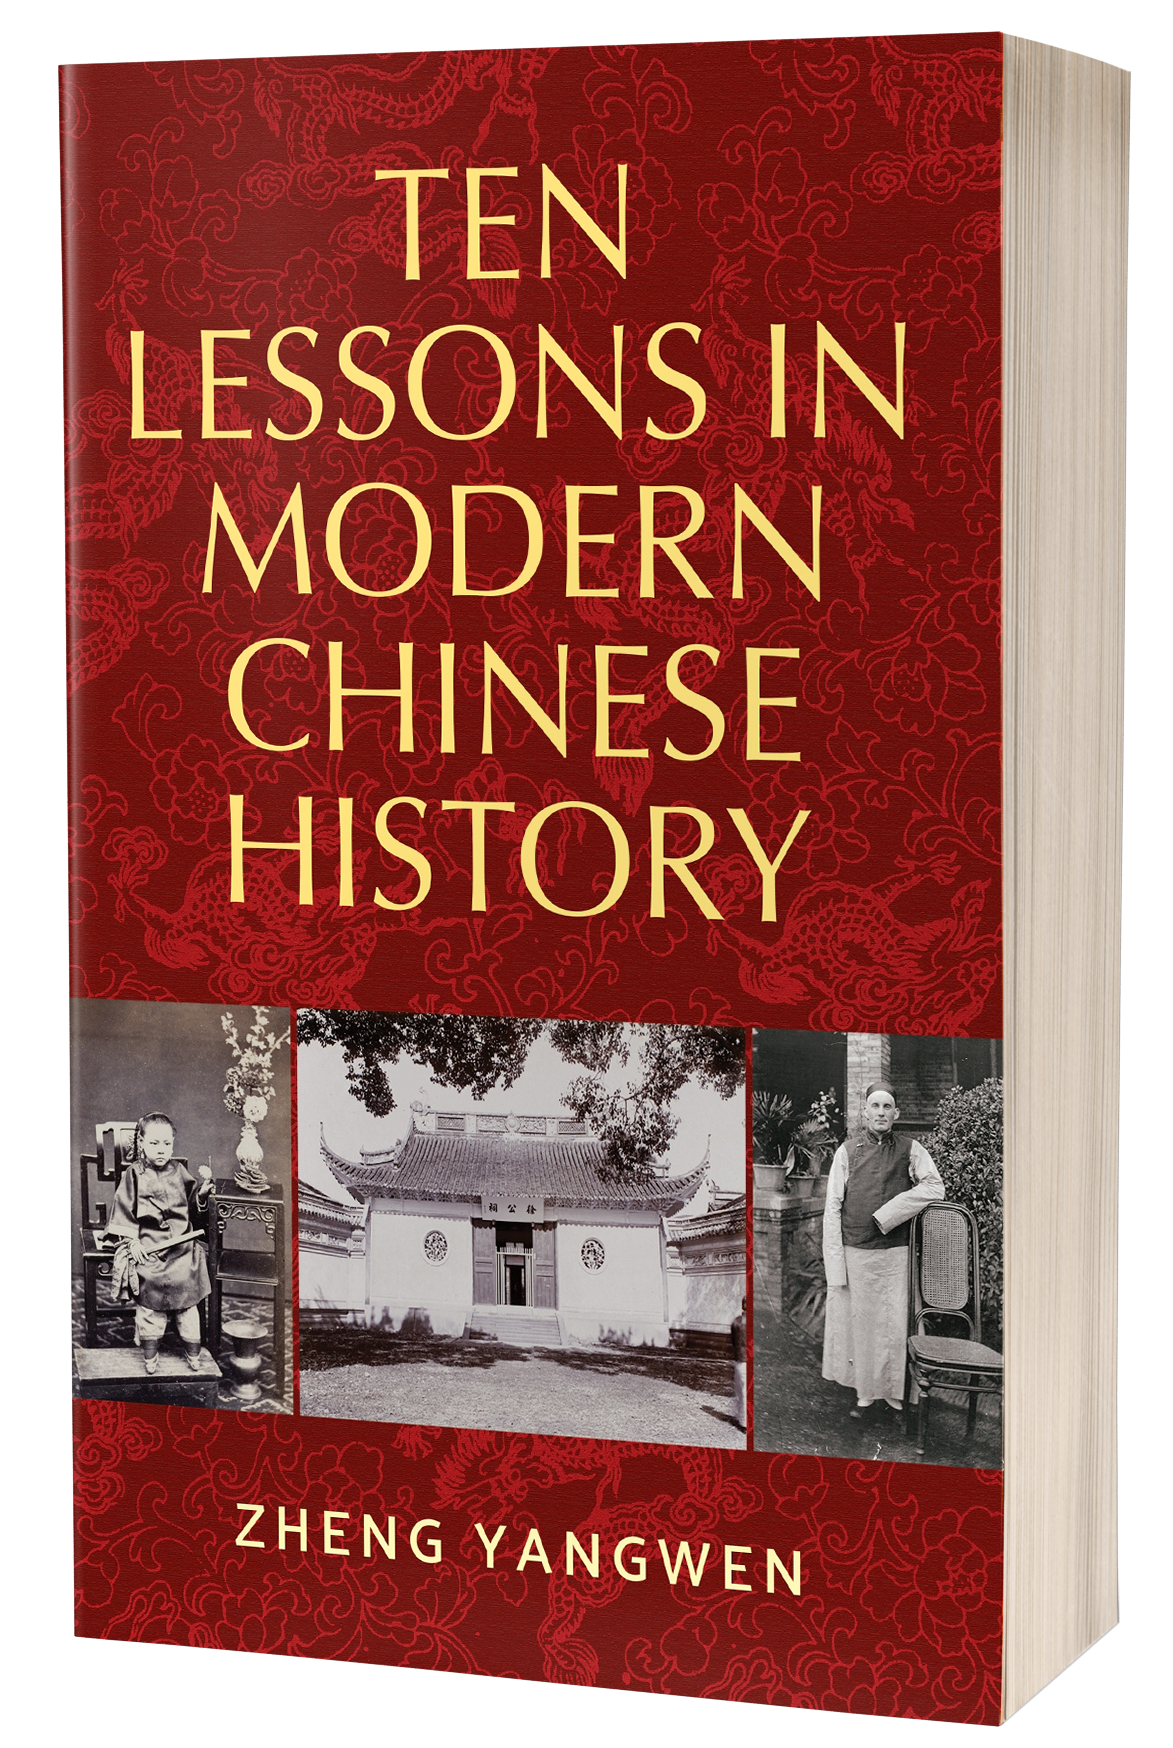 Ten Lessons in Modern Chinese History – Q&A with Zheng Yangwen